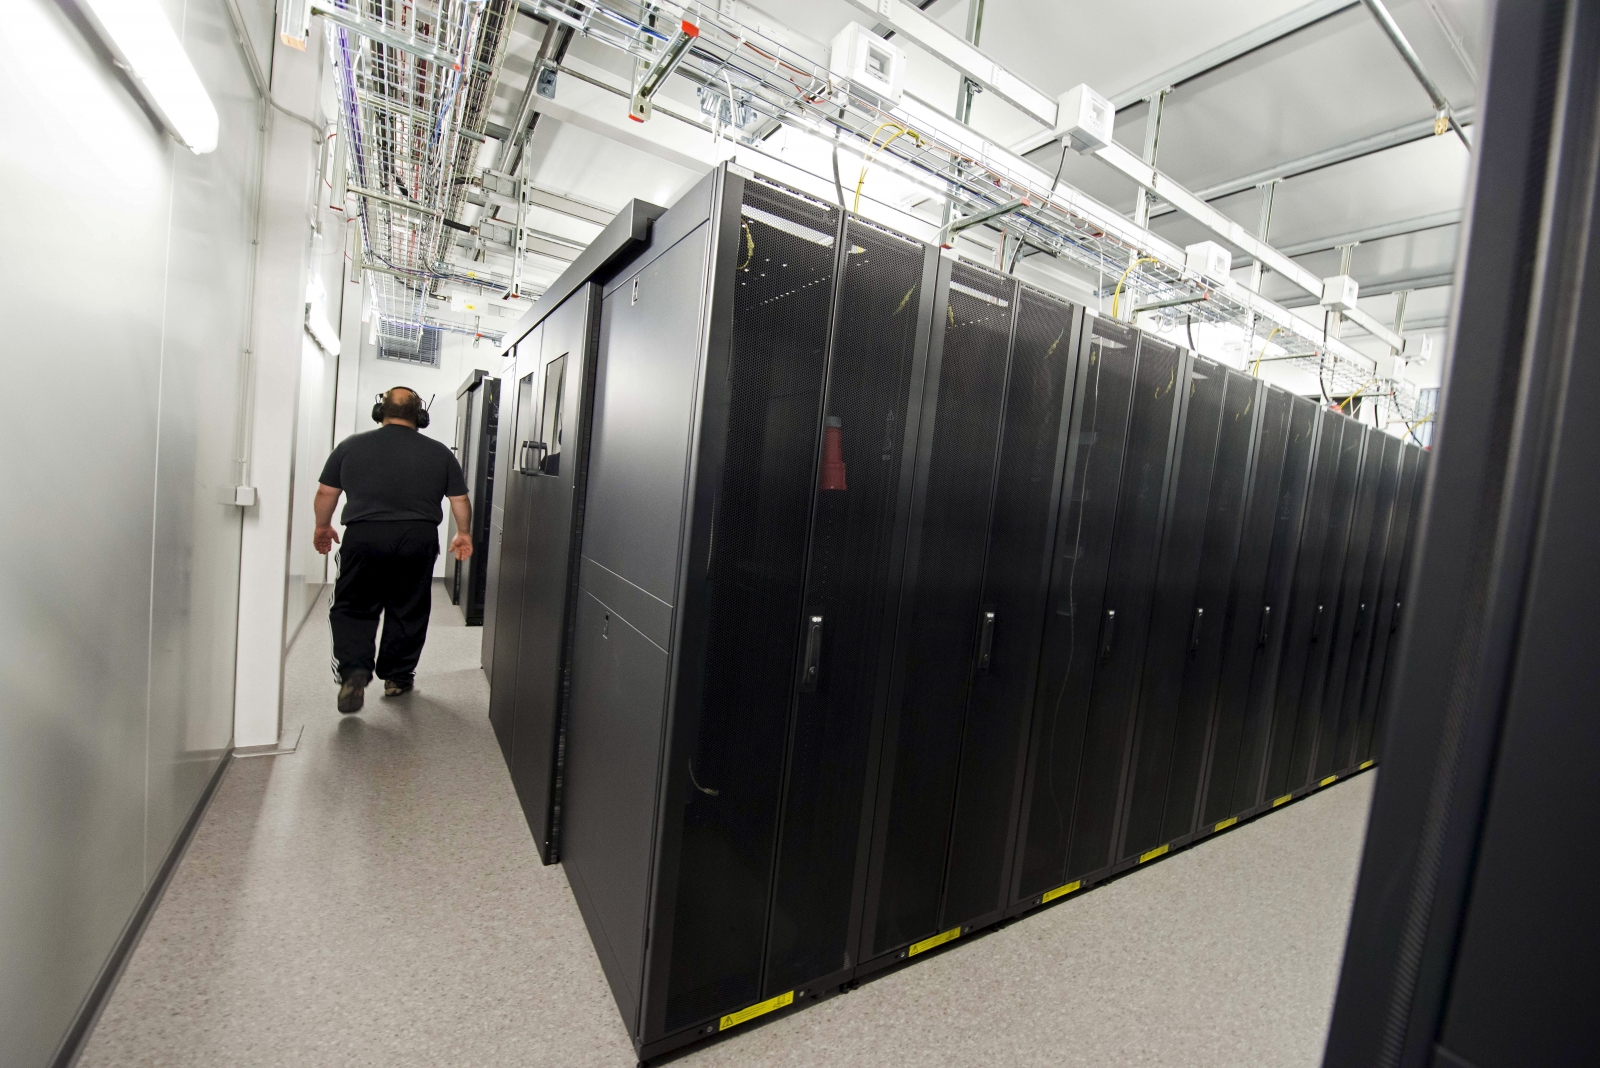 Dublin's DCC to acquire data storage company Hammer for £38.3m